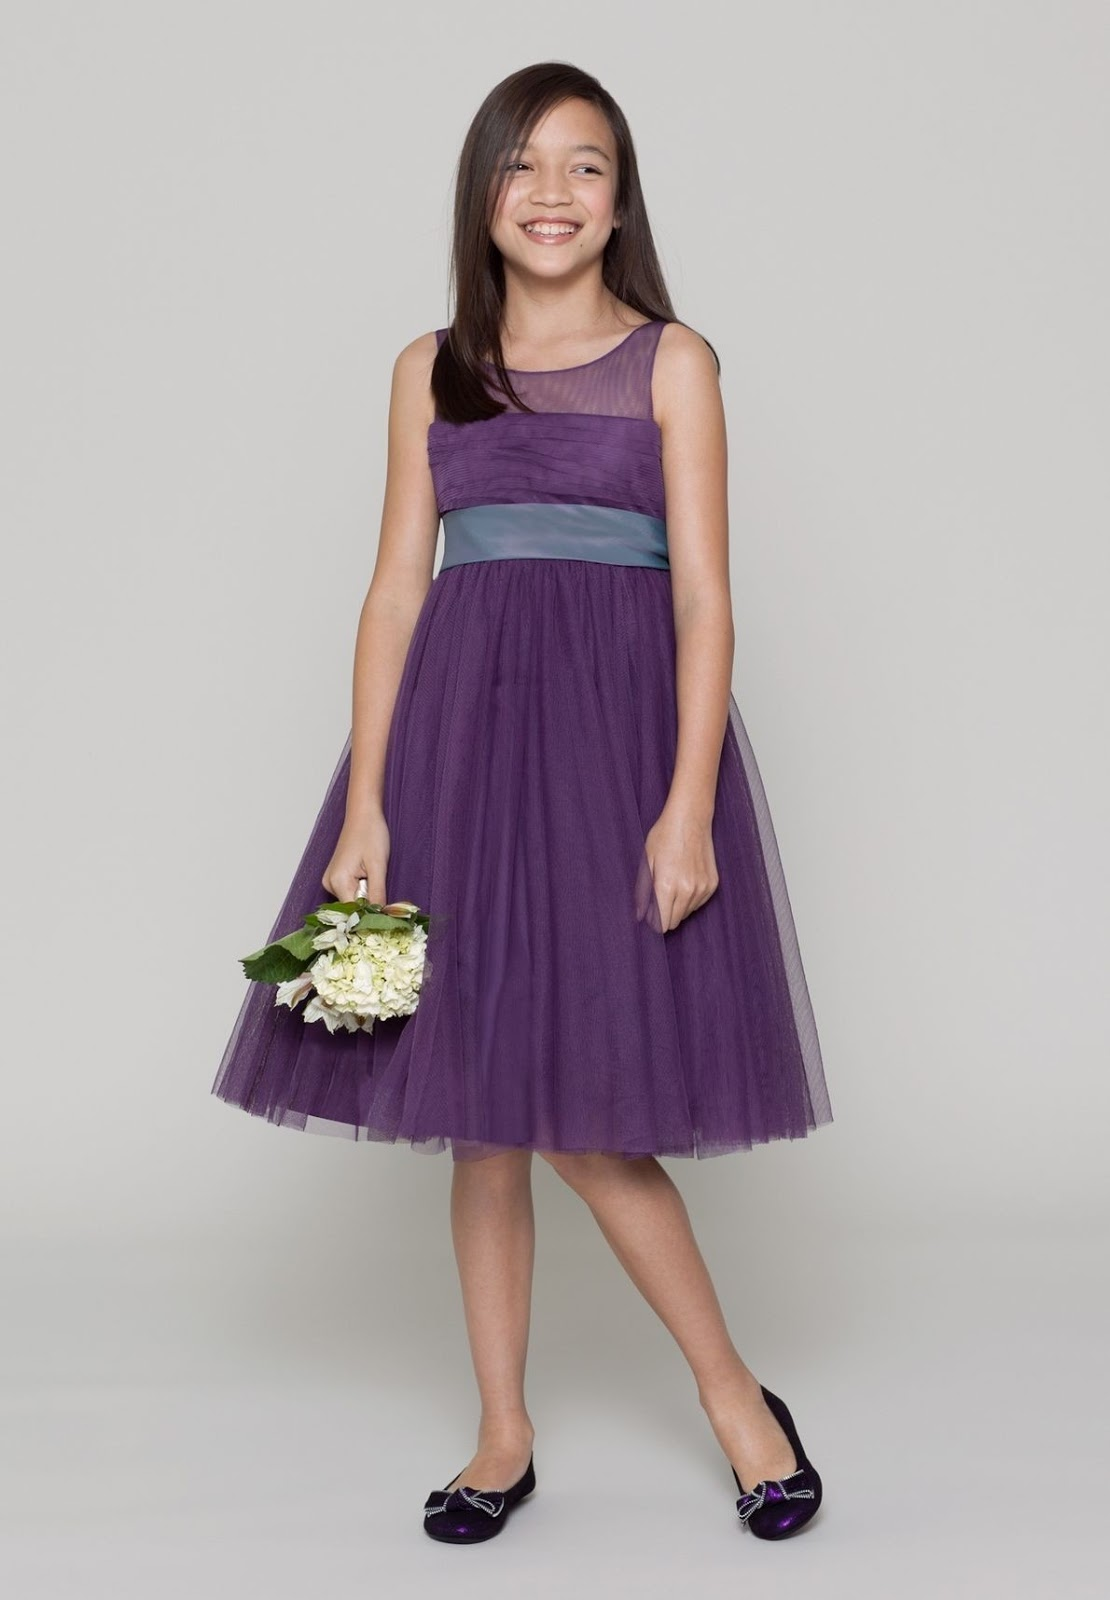 Winsome Purple Junior Bridesmaid Dresses Junior Bridesmaid Dresses Dressed Up Girl Jr Bridesmaid Dresses Girls Jr Bridesmaid Dresses Pink Sequin wedding dress Jr Bridesmaid Dresses